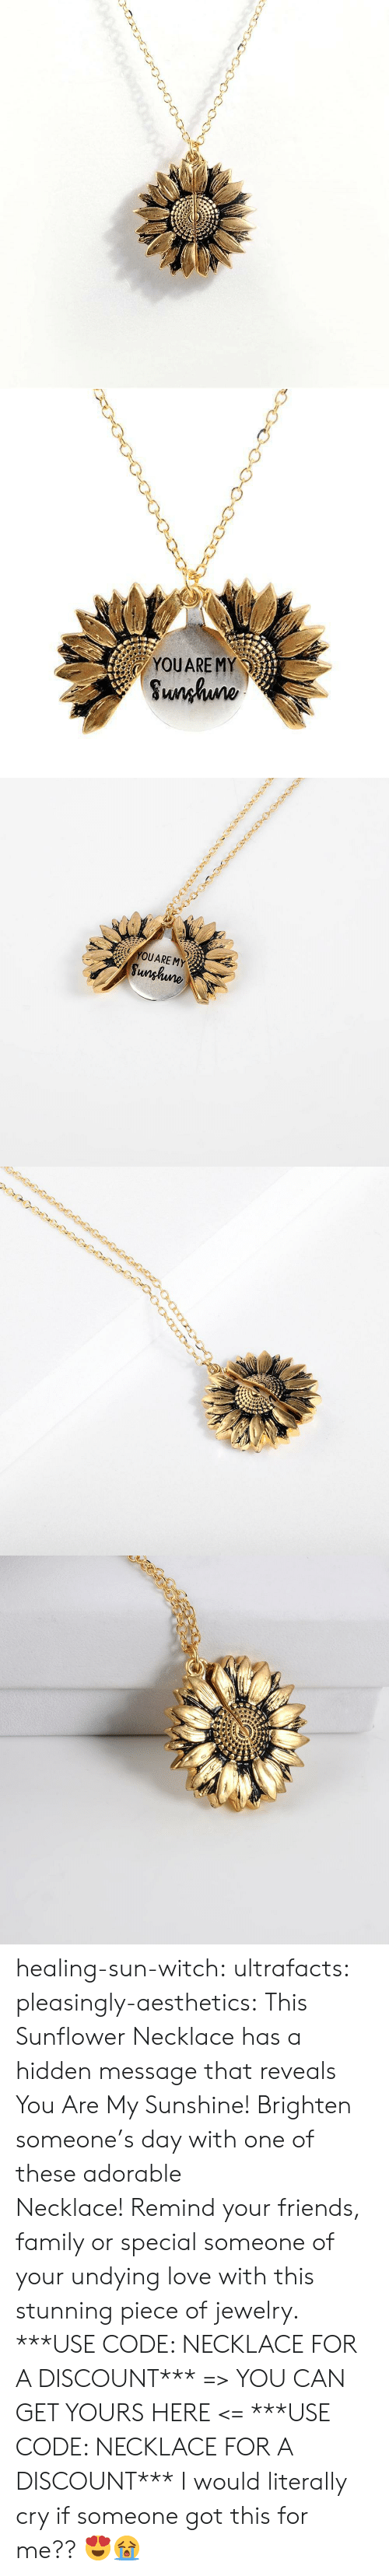 Family, Friends, and Love: YOUARE MY  Sunhuno   YOUARE MY  Sunghune healing-sun-witch: ultrafacts:   pleasingly-aesthetics:  This Sunflower Necklace has a hidden message that reveals You Are My Sunshine! Brighten someone's day with one of these adorable Necklace! Remind your friends, family or special someone of your undying love with this stunning piece of jewelry. ***USE CODE: NECKLACE FOR A DISCOUNT*** => YOU CAN GET YOURS HERE <=    ***USE CODE: NECKLACE FOR A DISCOUNT***     I would literally cry if someone got this for me?? 😍😭